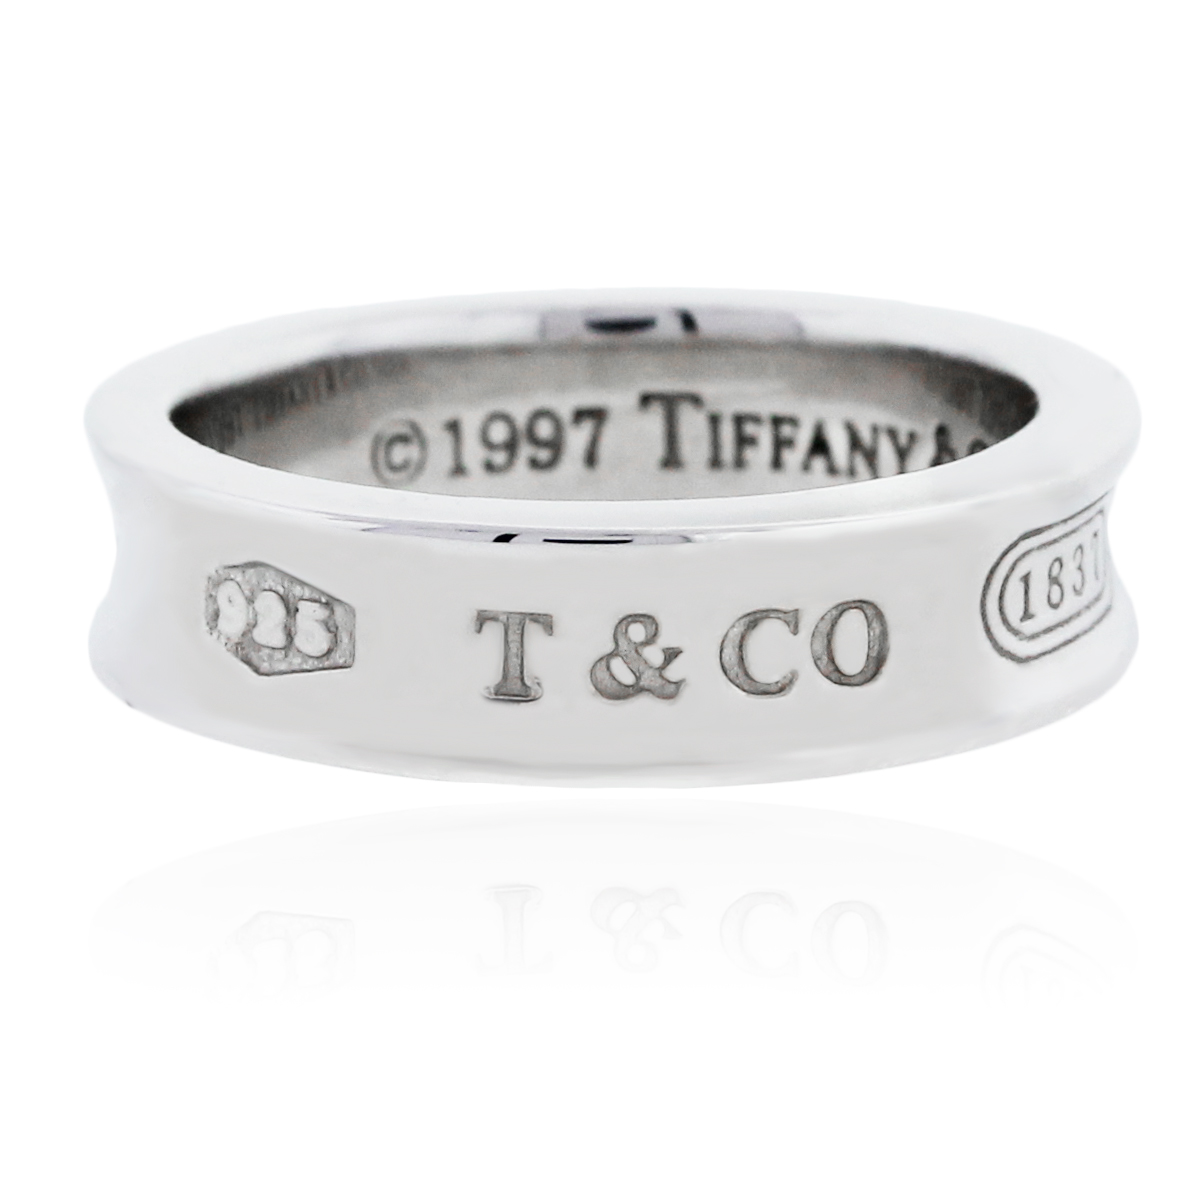 1f57ba37e28e Tiffany-Co.-Sterling-Silver-1837-Band-Ring.jpg